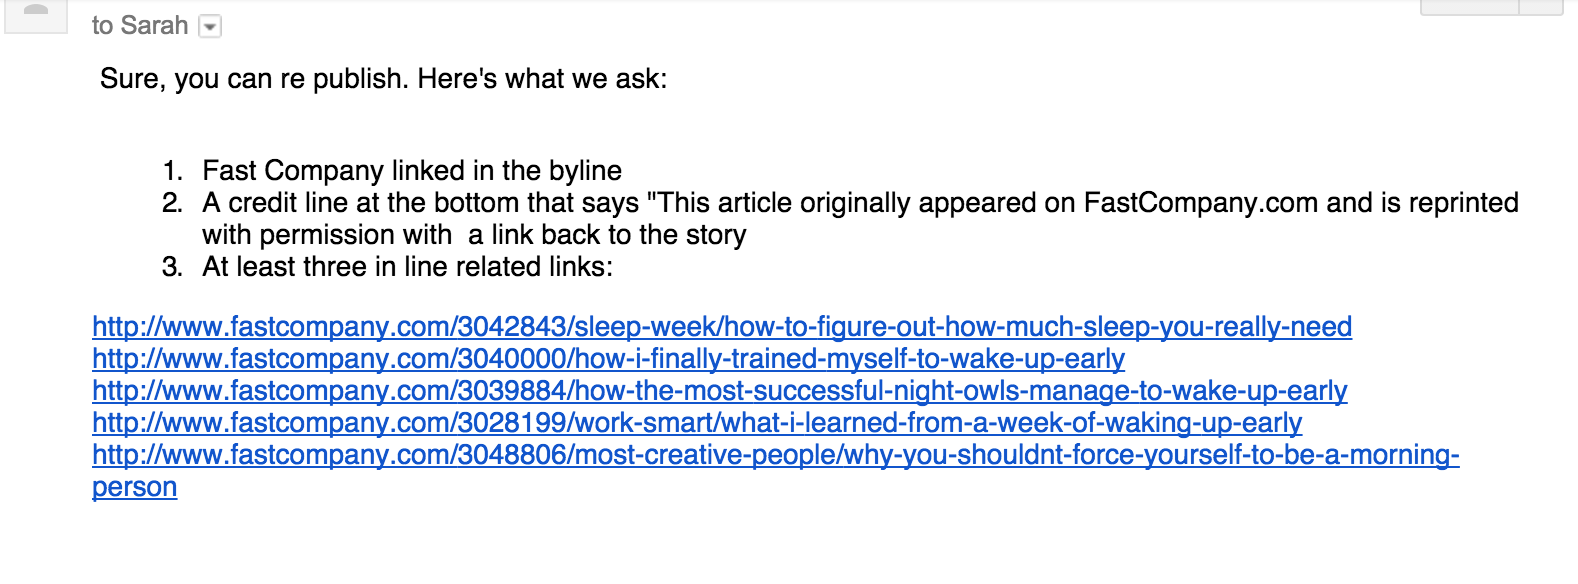 Screenshot showing an email sent by FastCompany about republishing